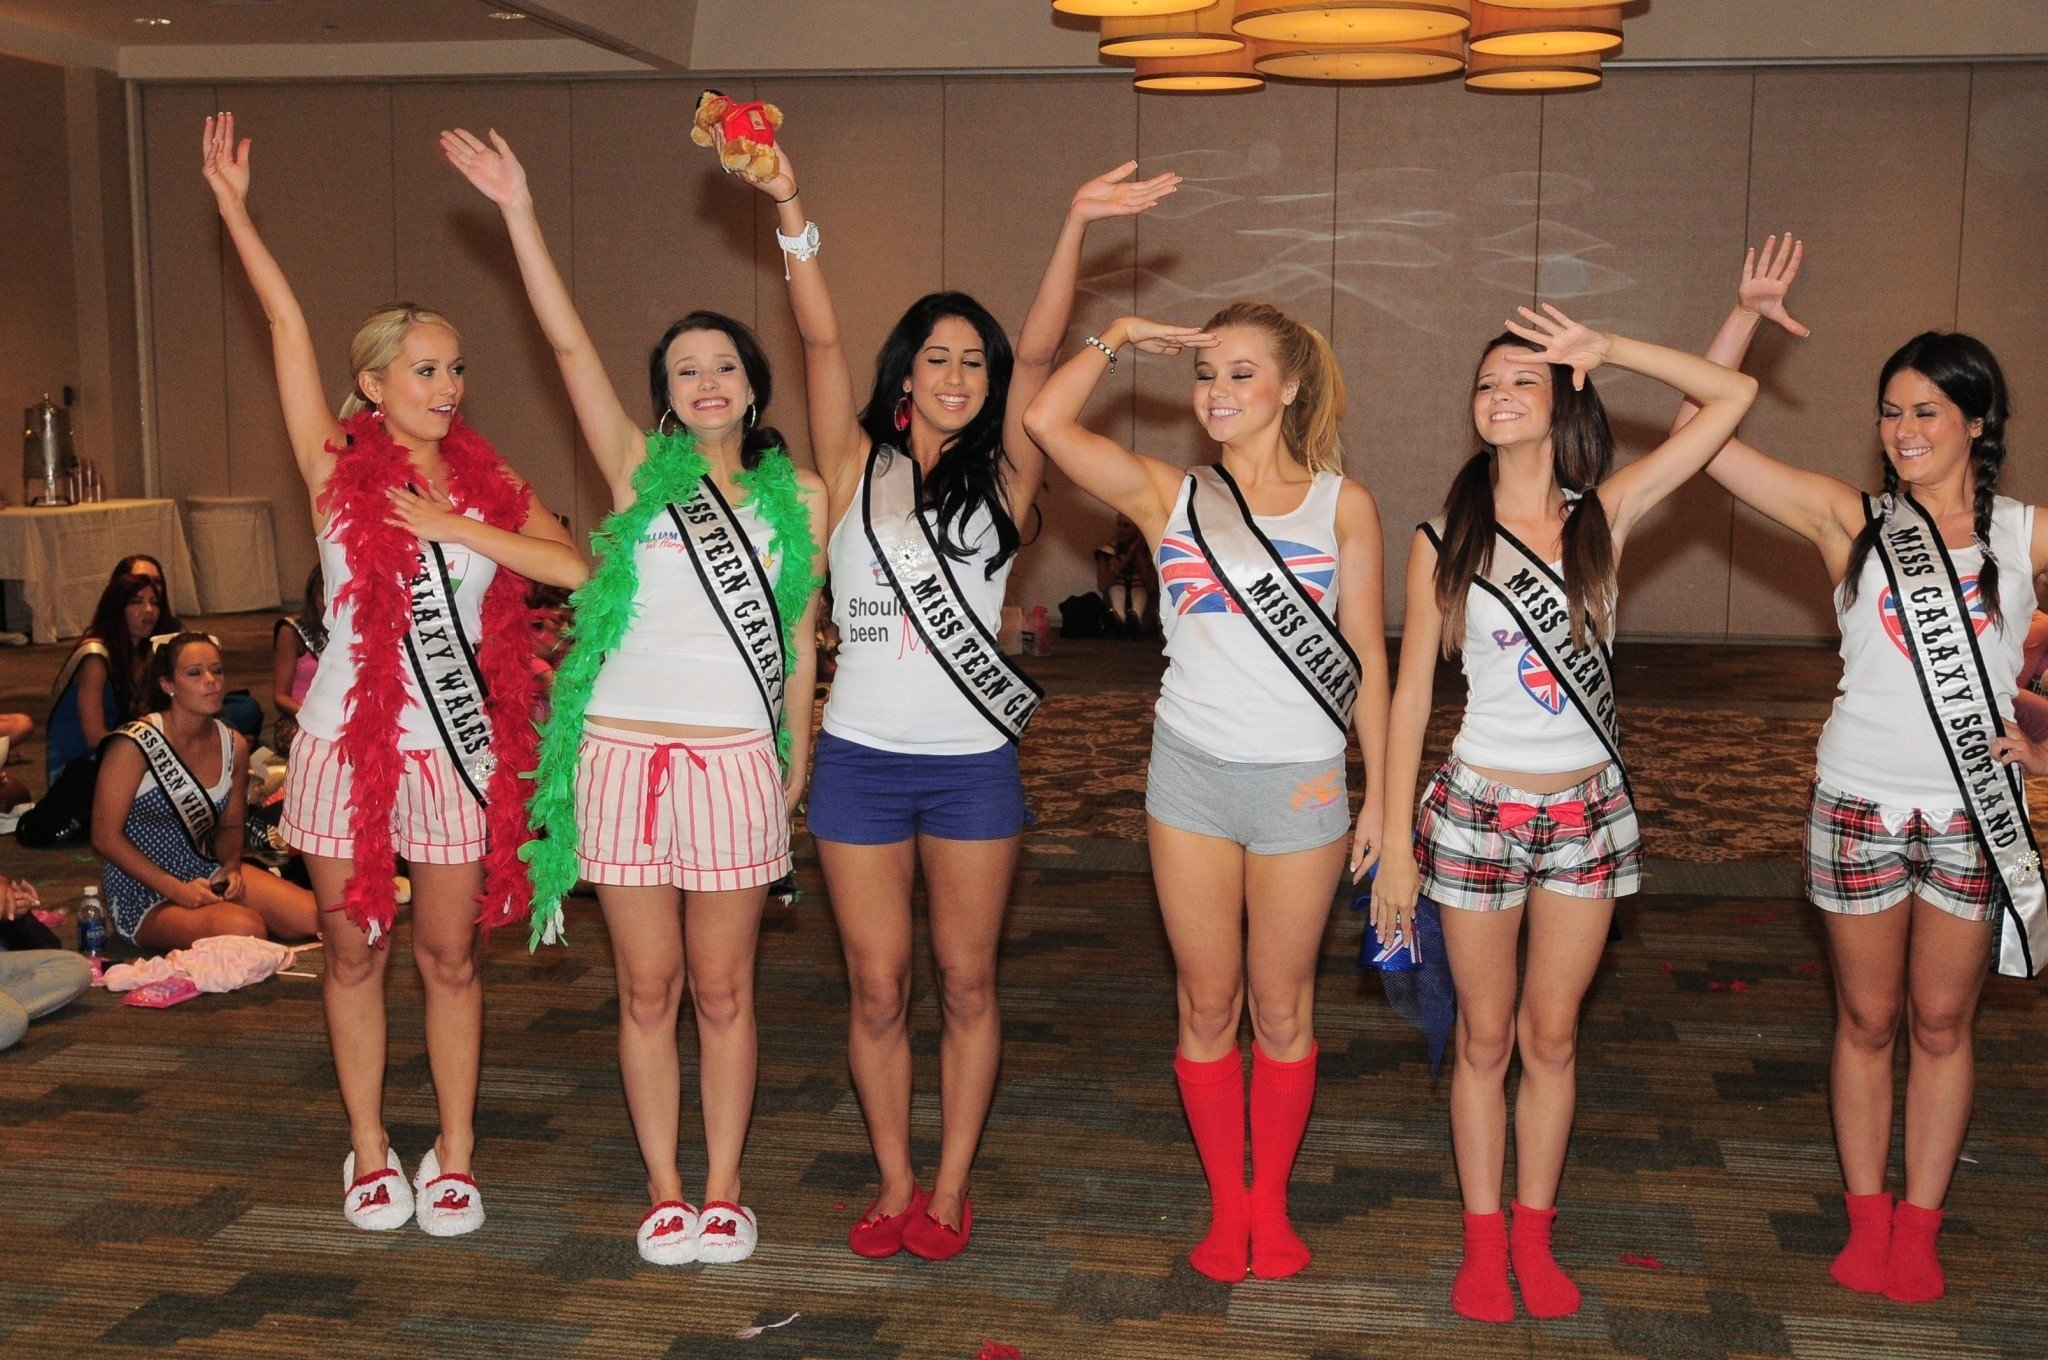 10 Amazing Themed Party Ideas For College top 10 most popular themes for college party across the globe 2021